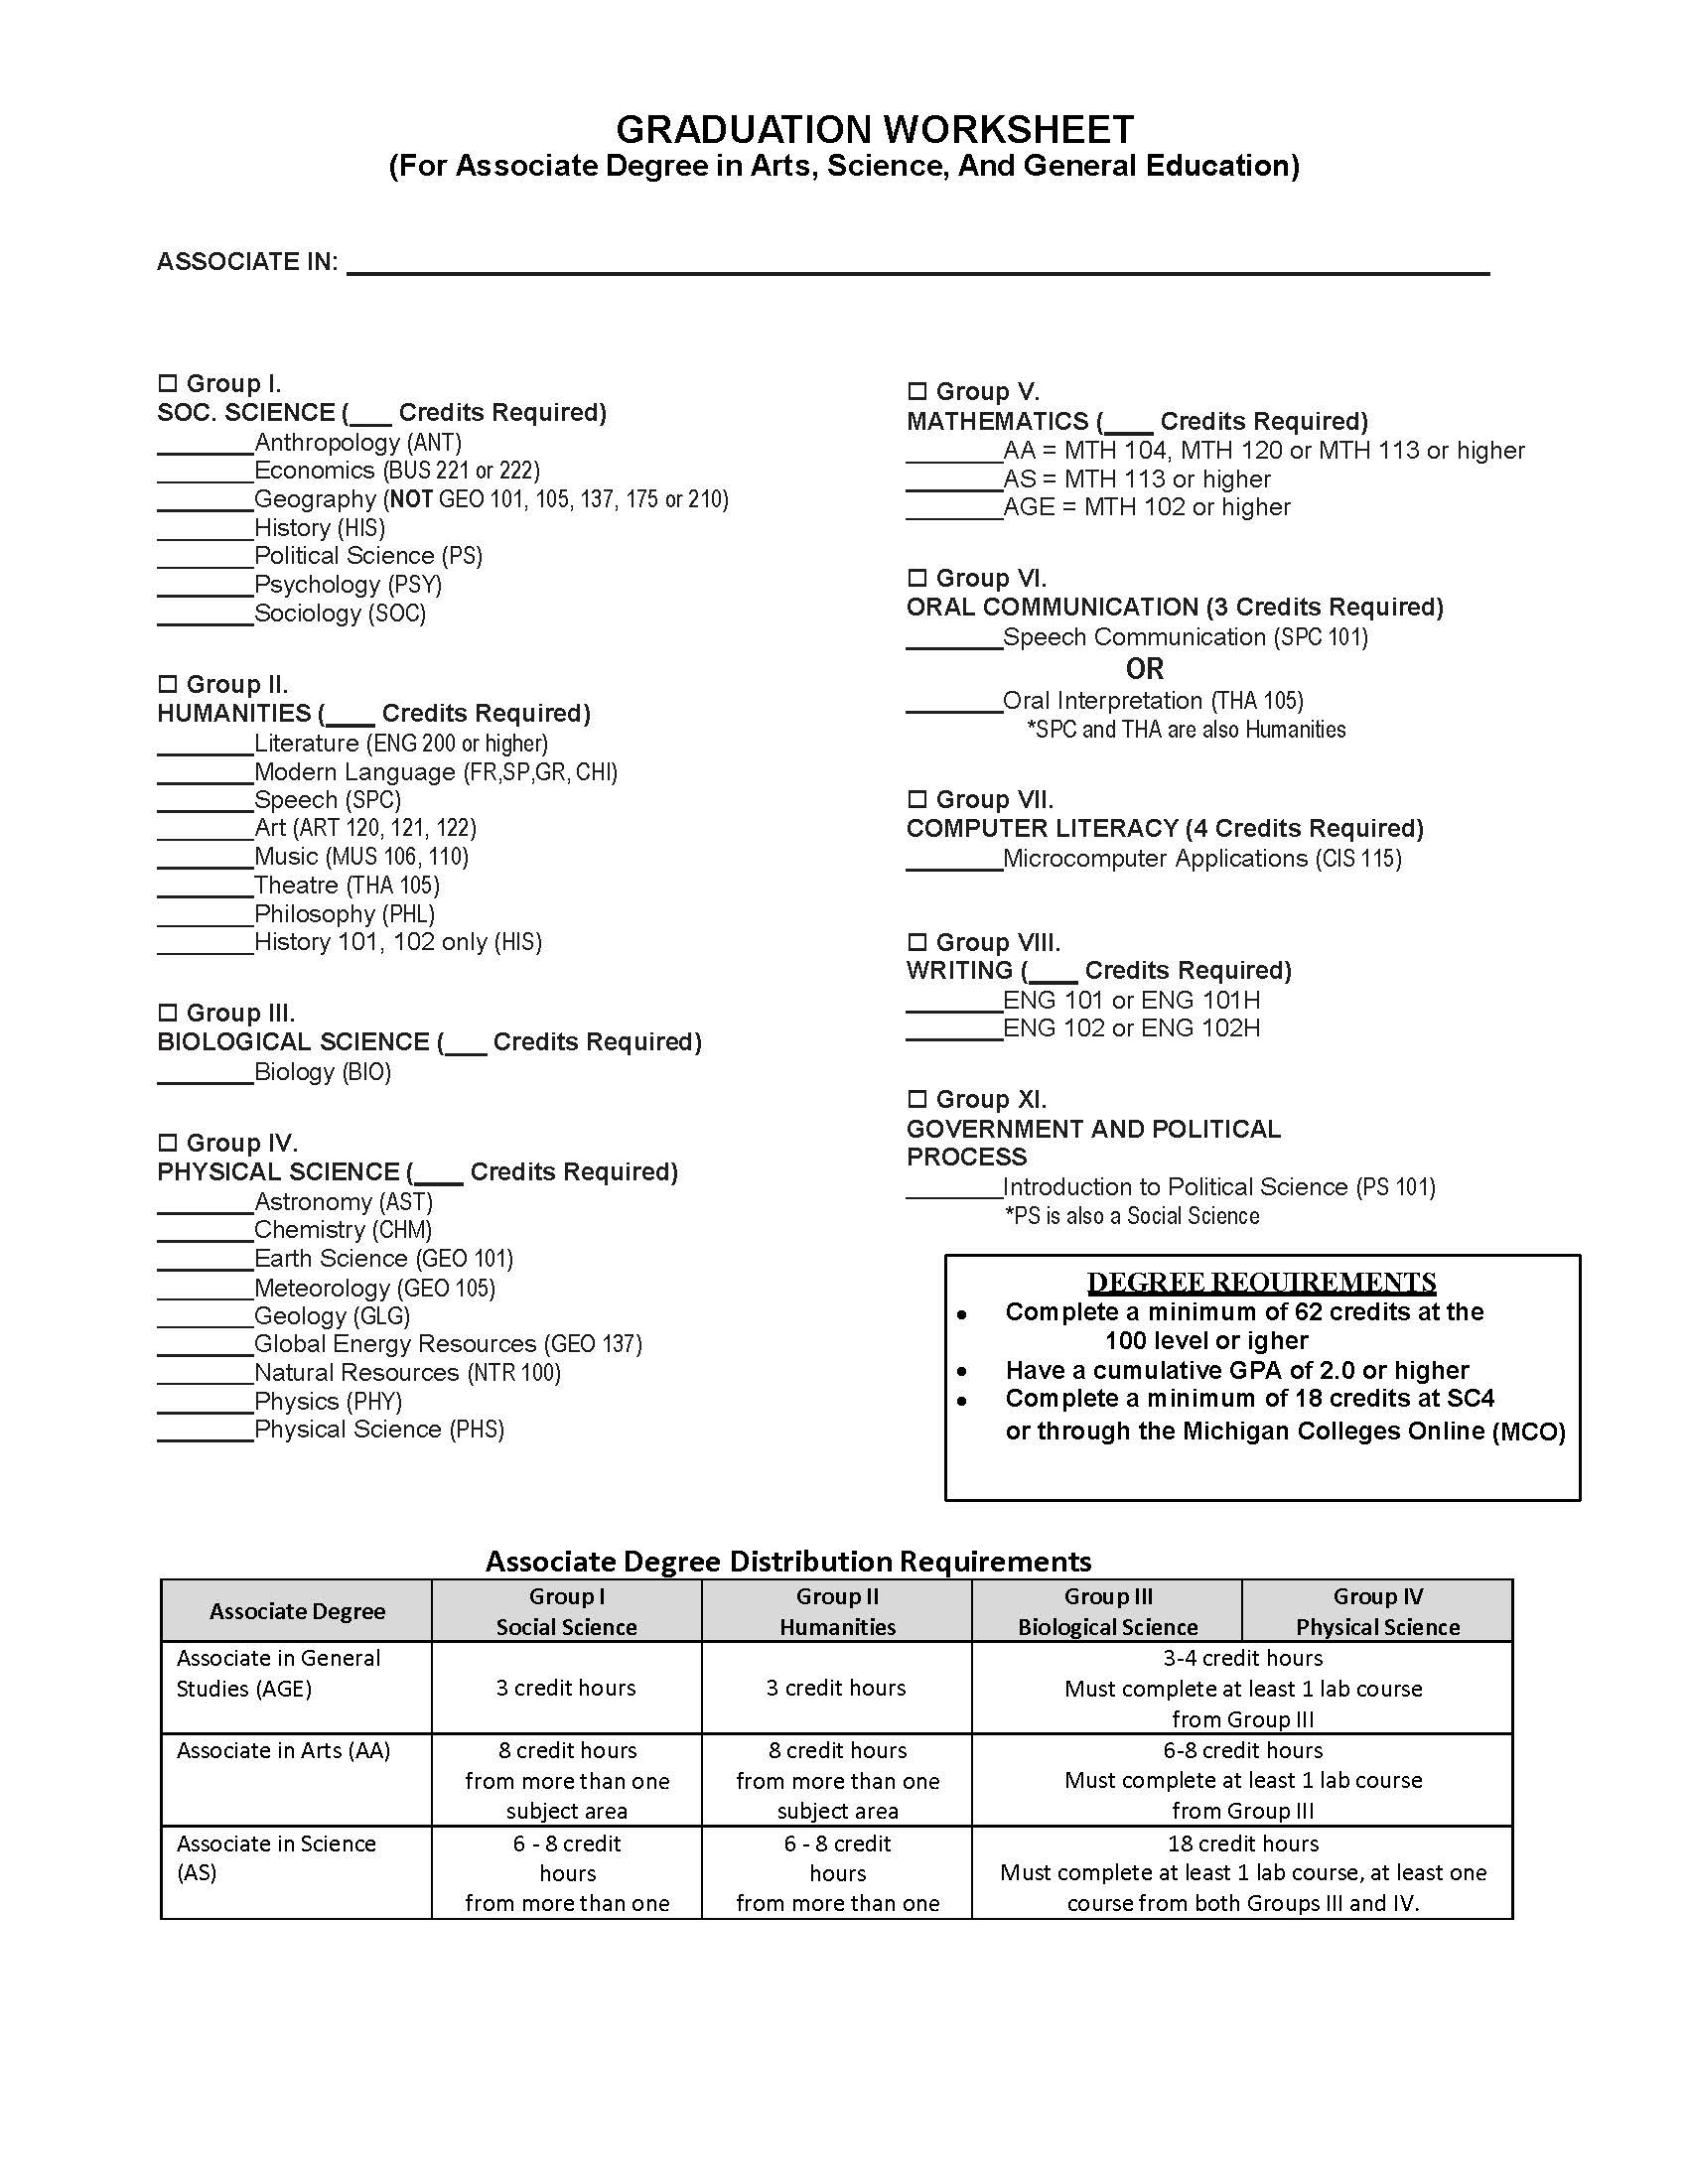 51 Ged Science Worksheets, Pictures Ged Science Worksheets - Free Printable Ged Science Worksheets